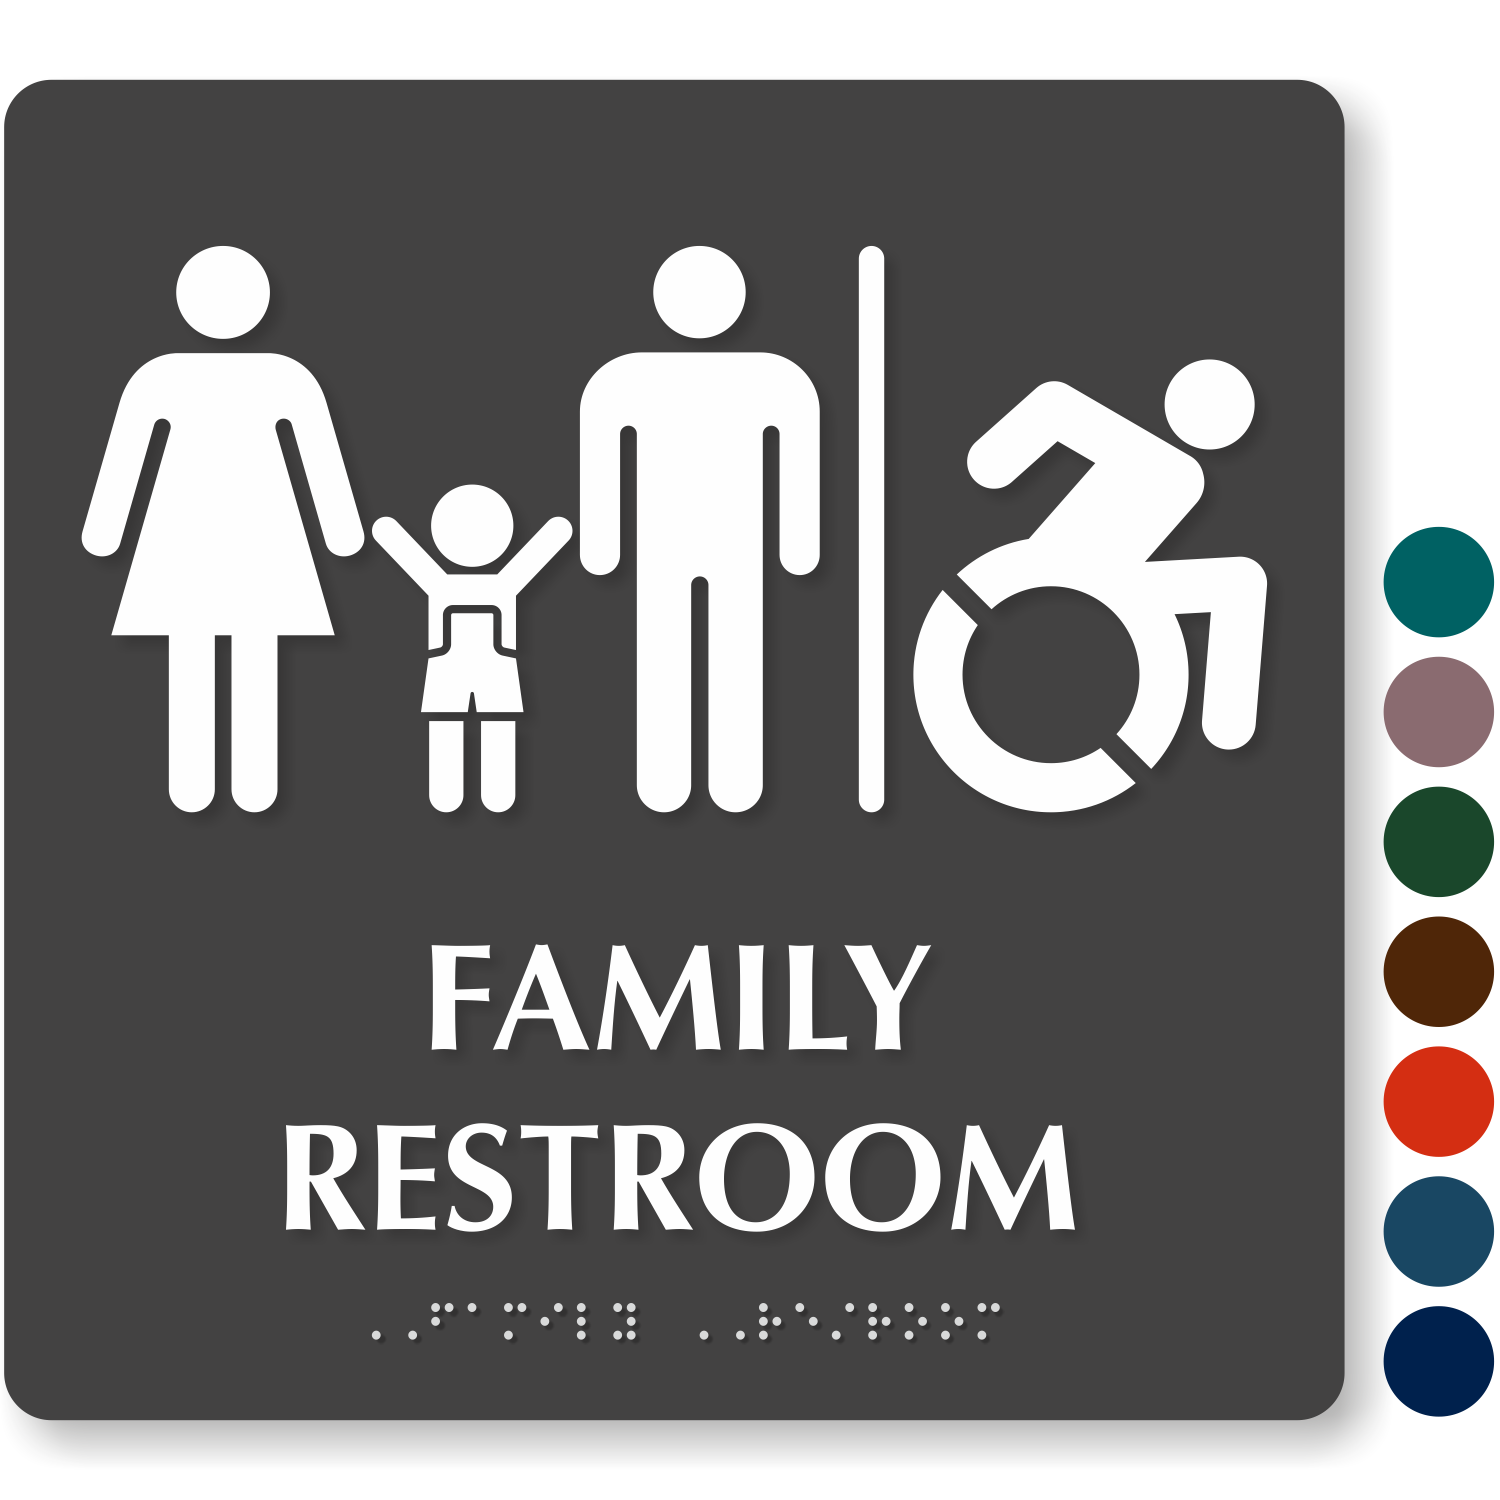 Bathroom Signs Walmart family restroom signs